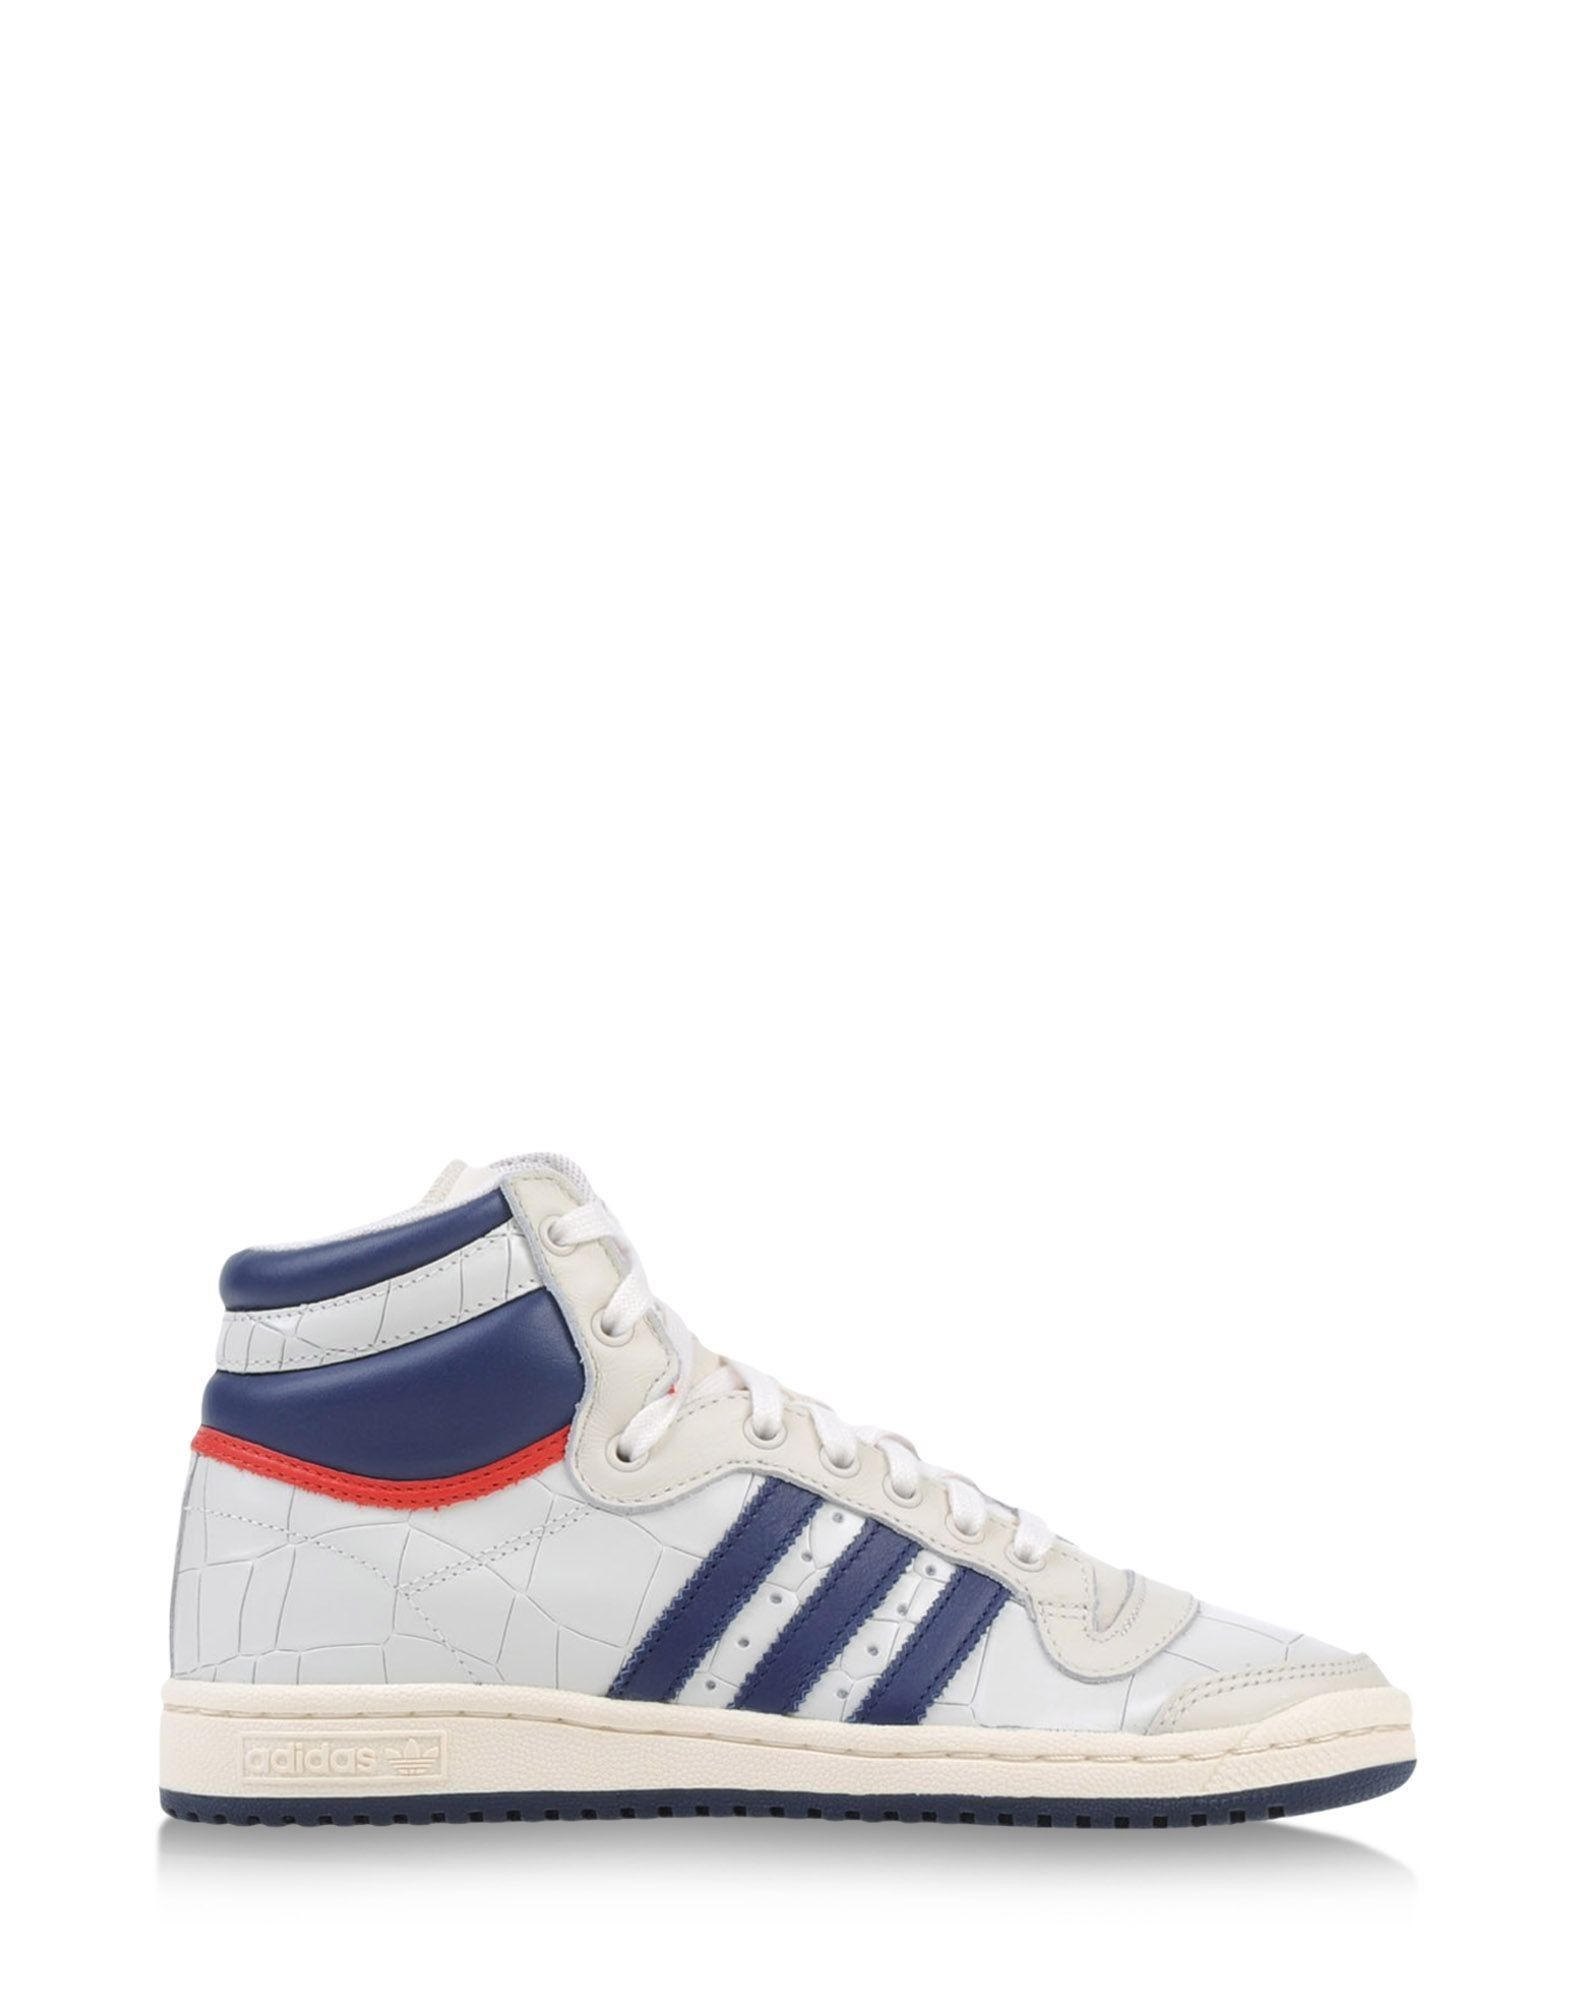 Adidas Originals: Printed Leather High-Top Sneaker